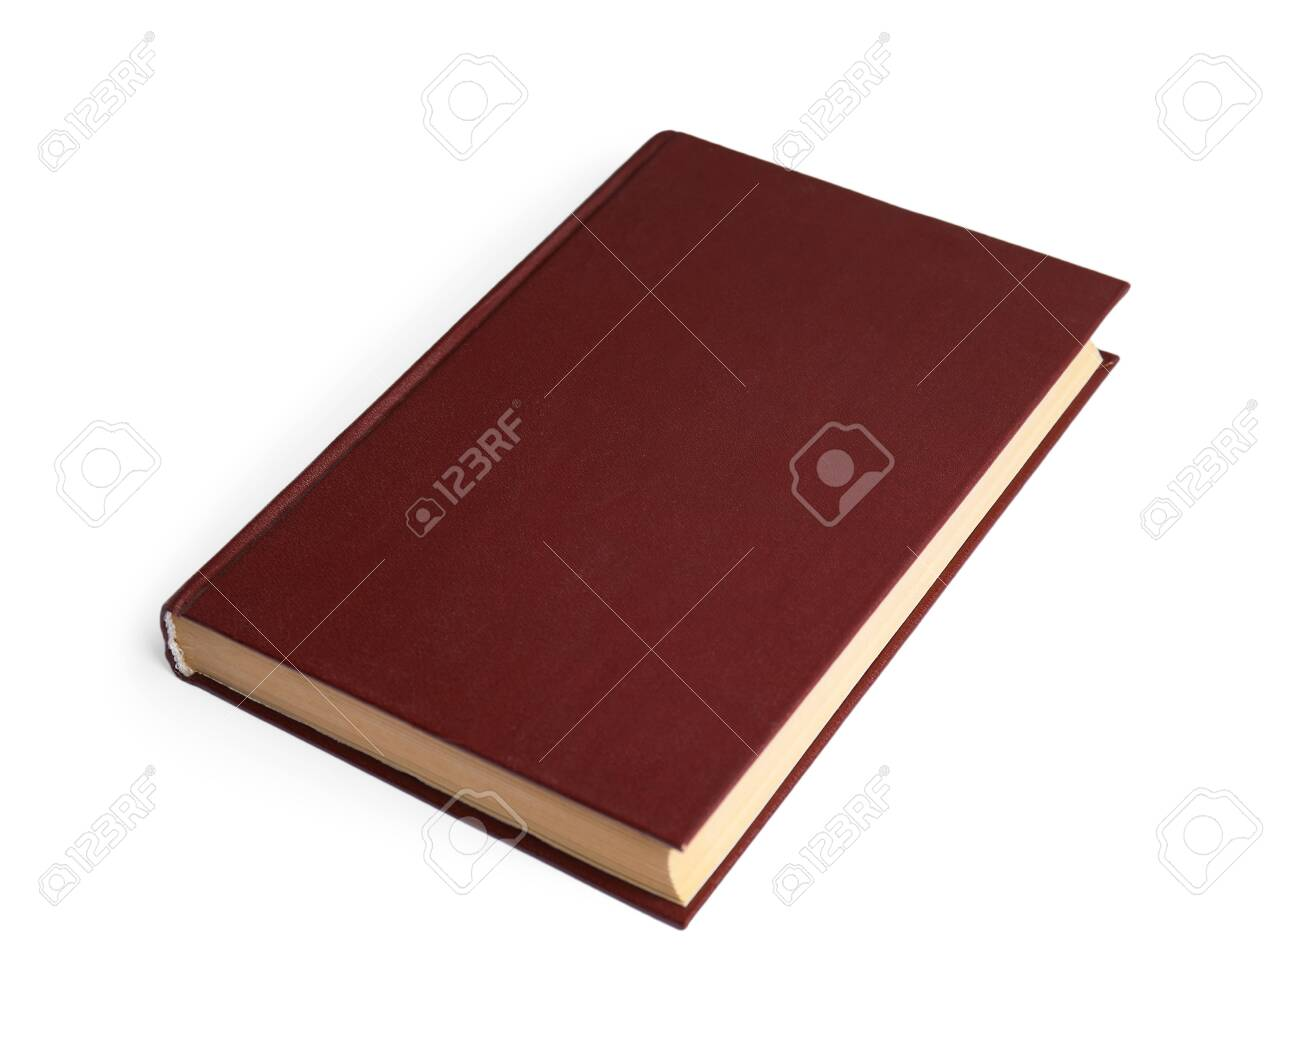 Book with blank brown cover on white background - 131582144